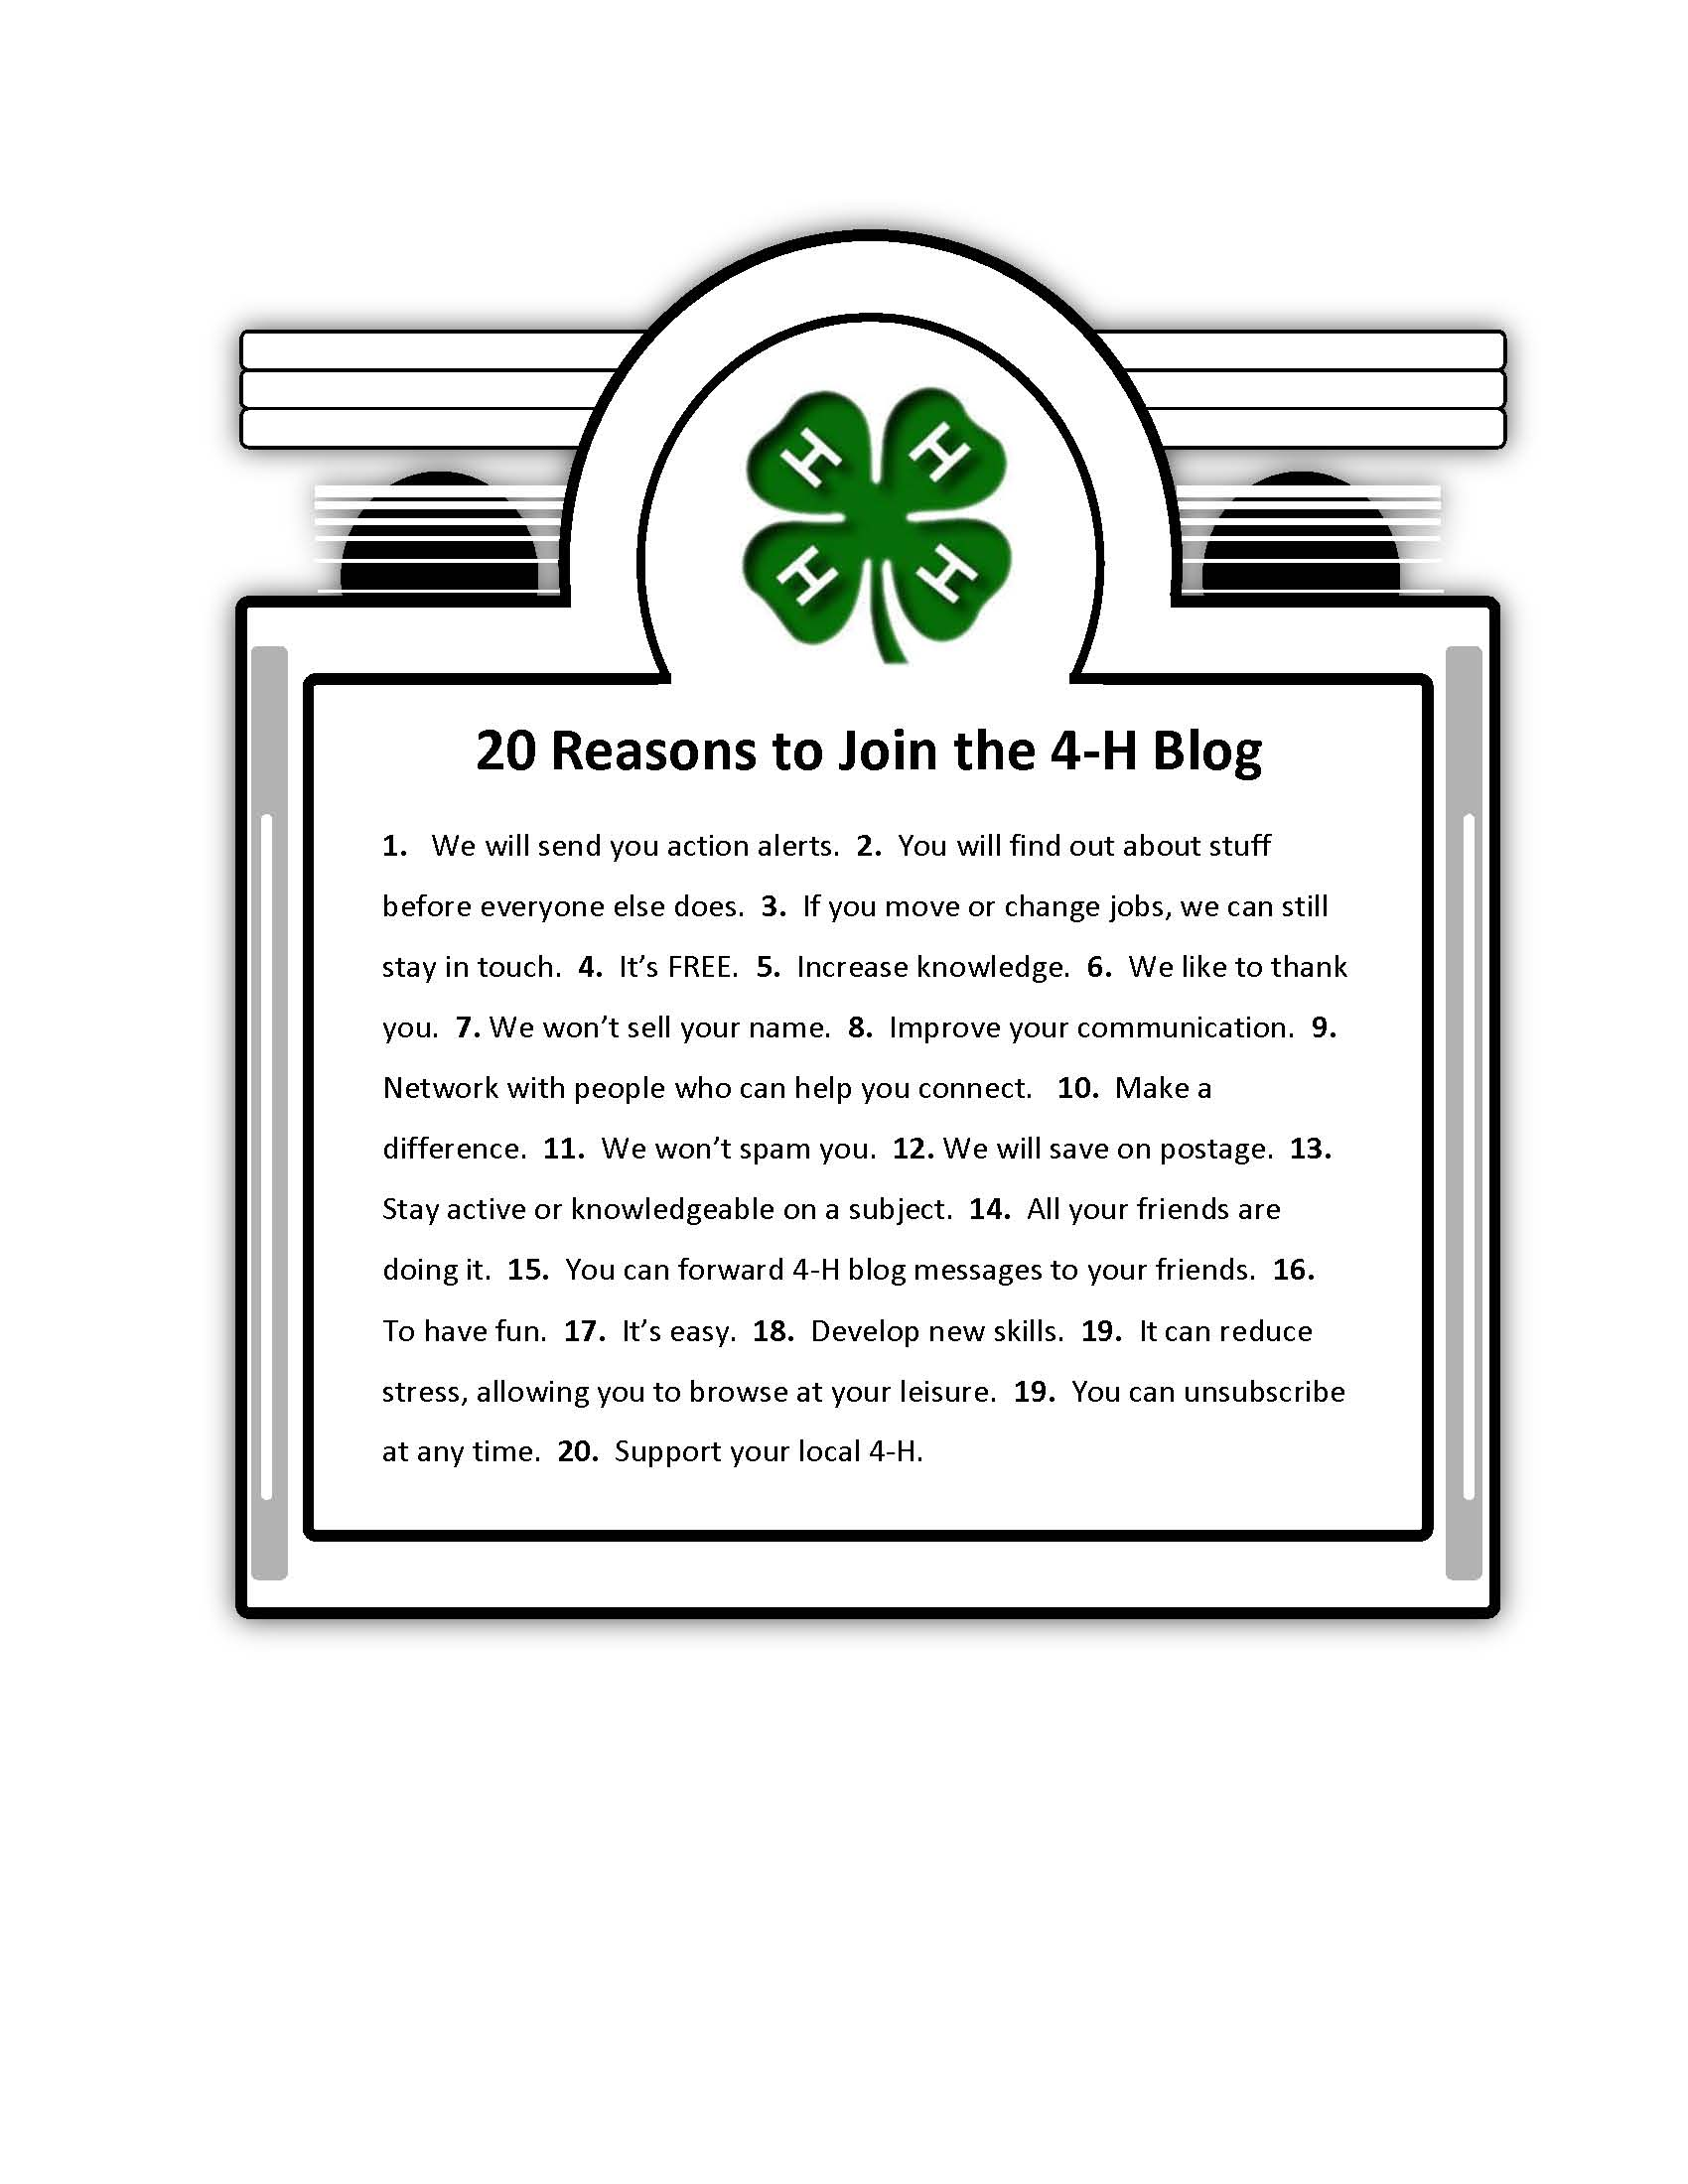 20 Reasons To Join the Blog